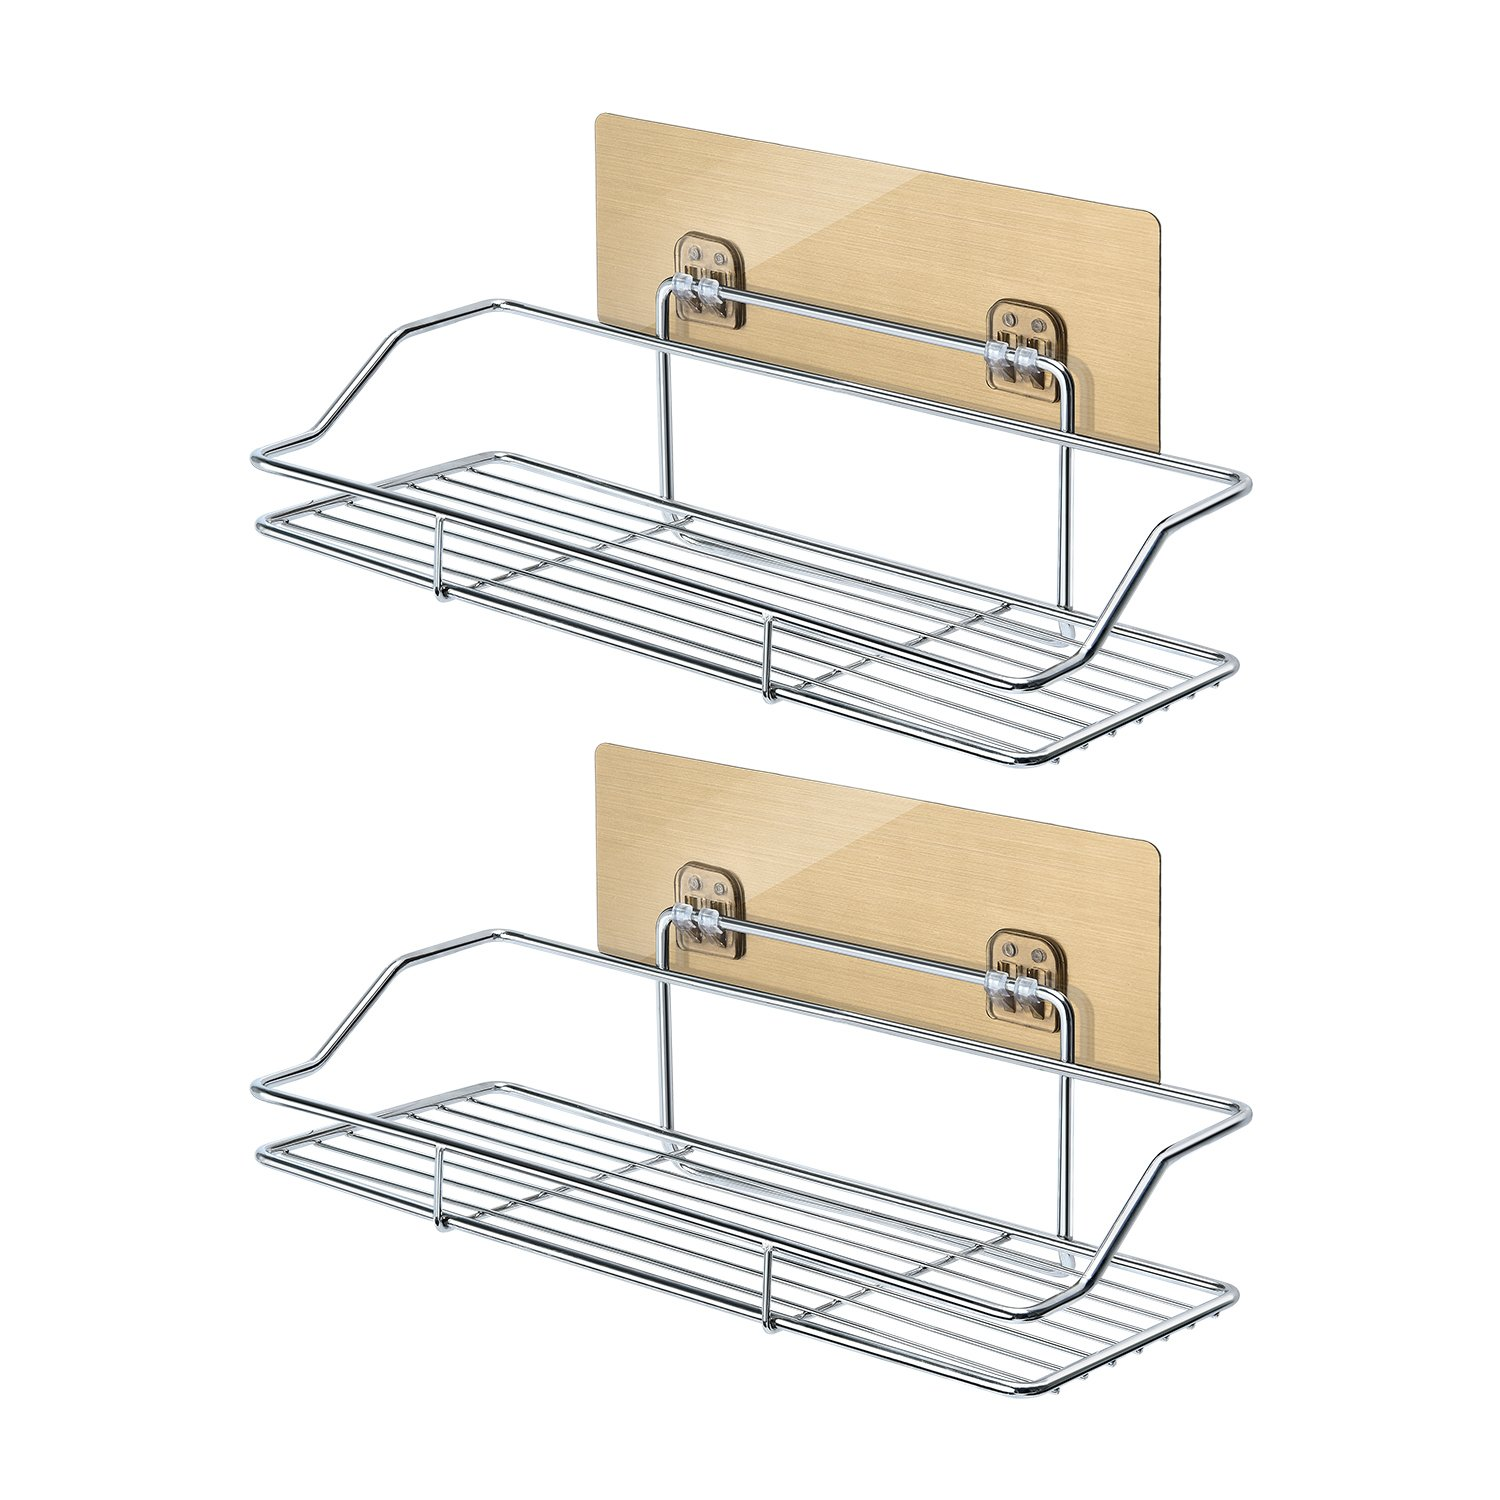 MASGALACC Adhesive Bathroom Shelf Wall Mounted Stainless Steel Shower Basket Kitchen Storage Rack No Driling - 2 Pack